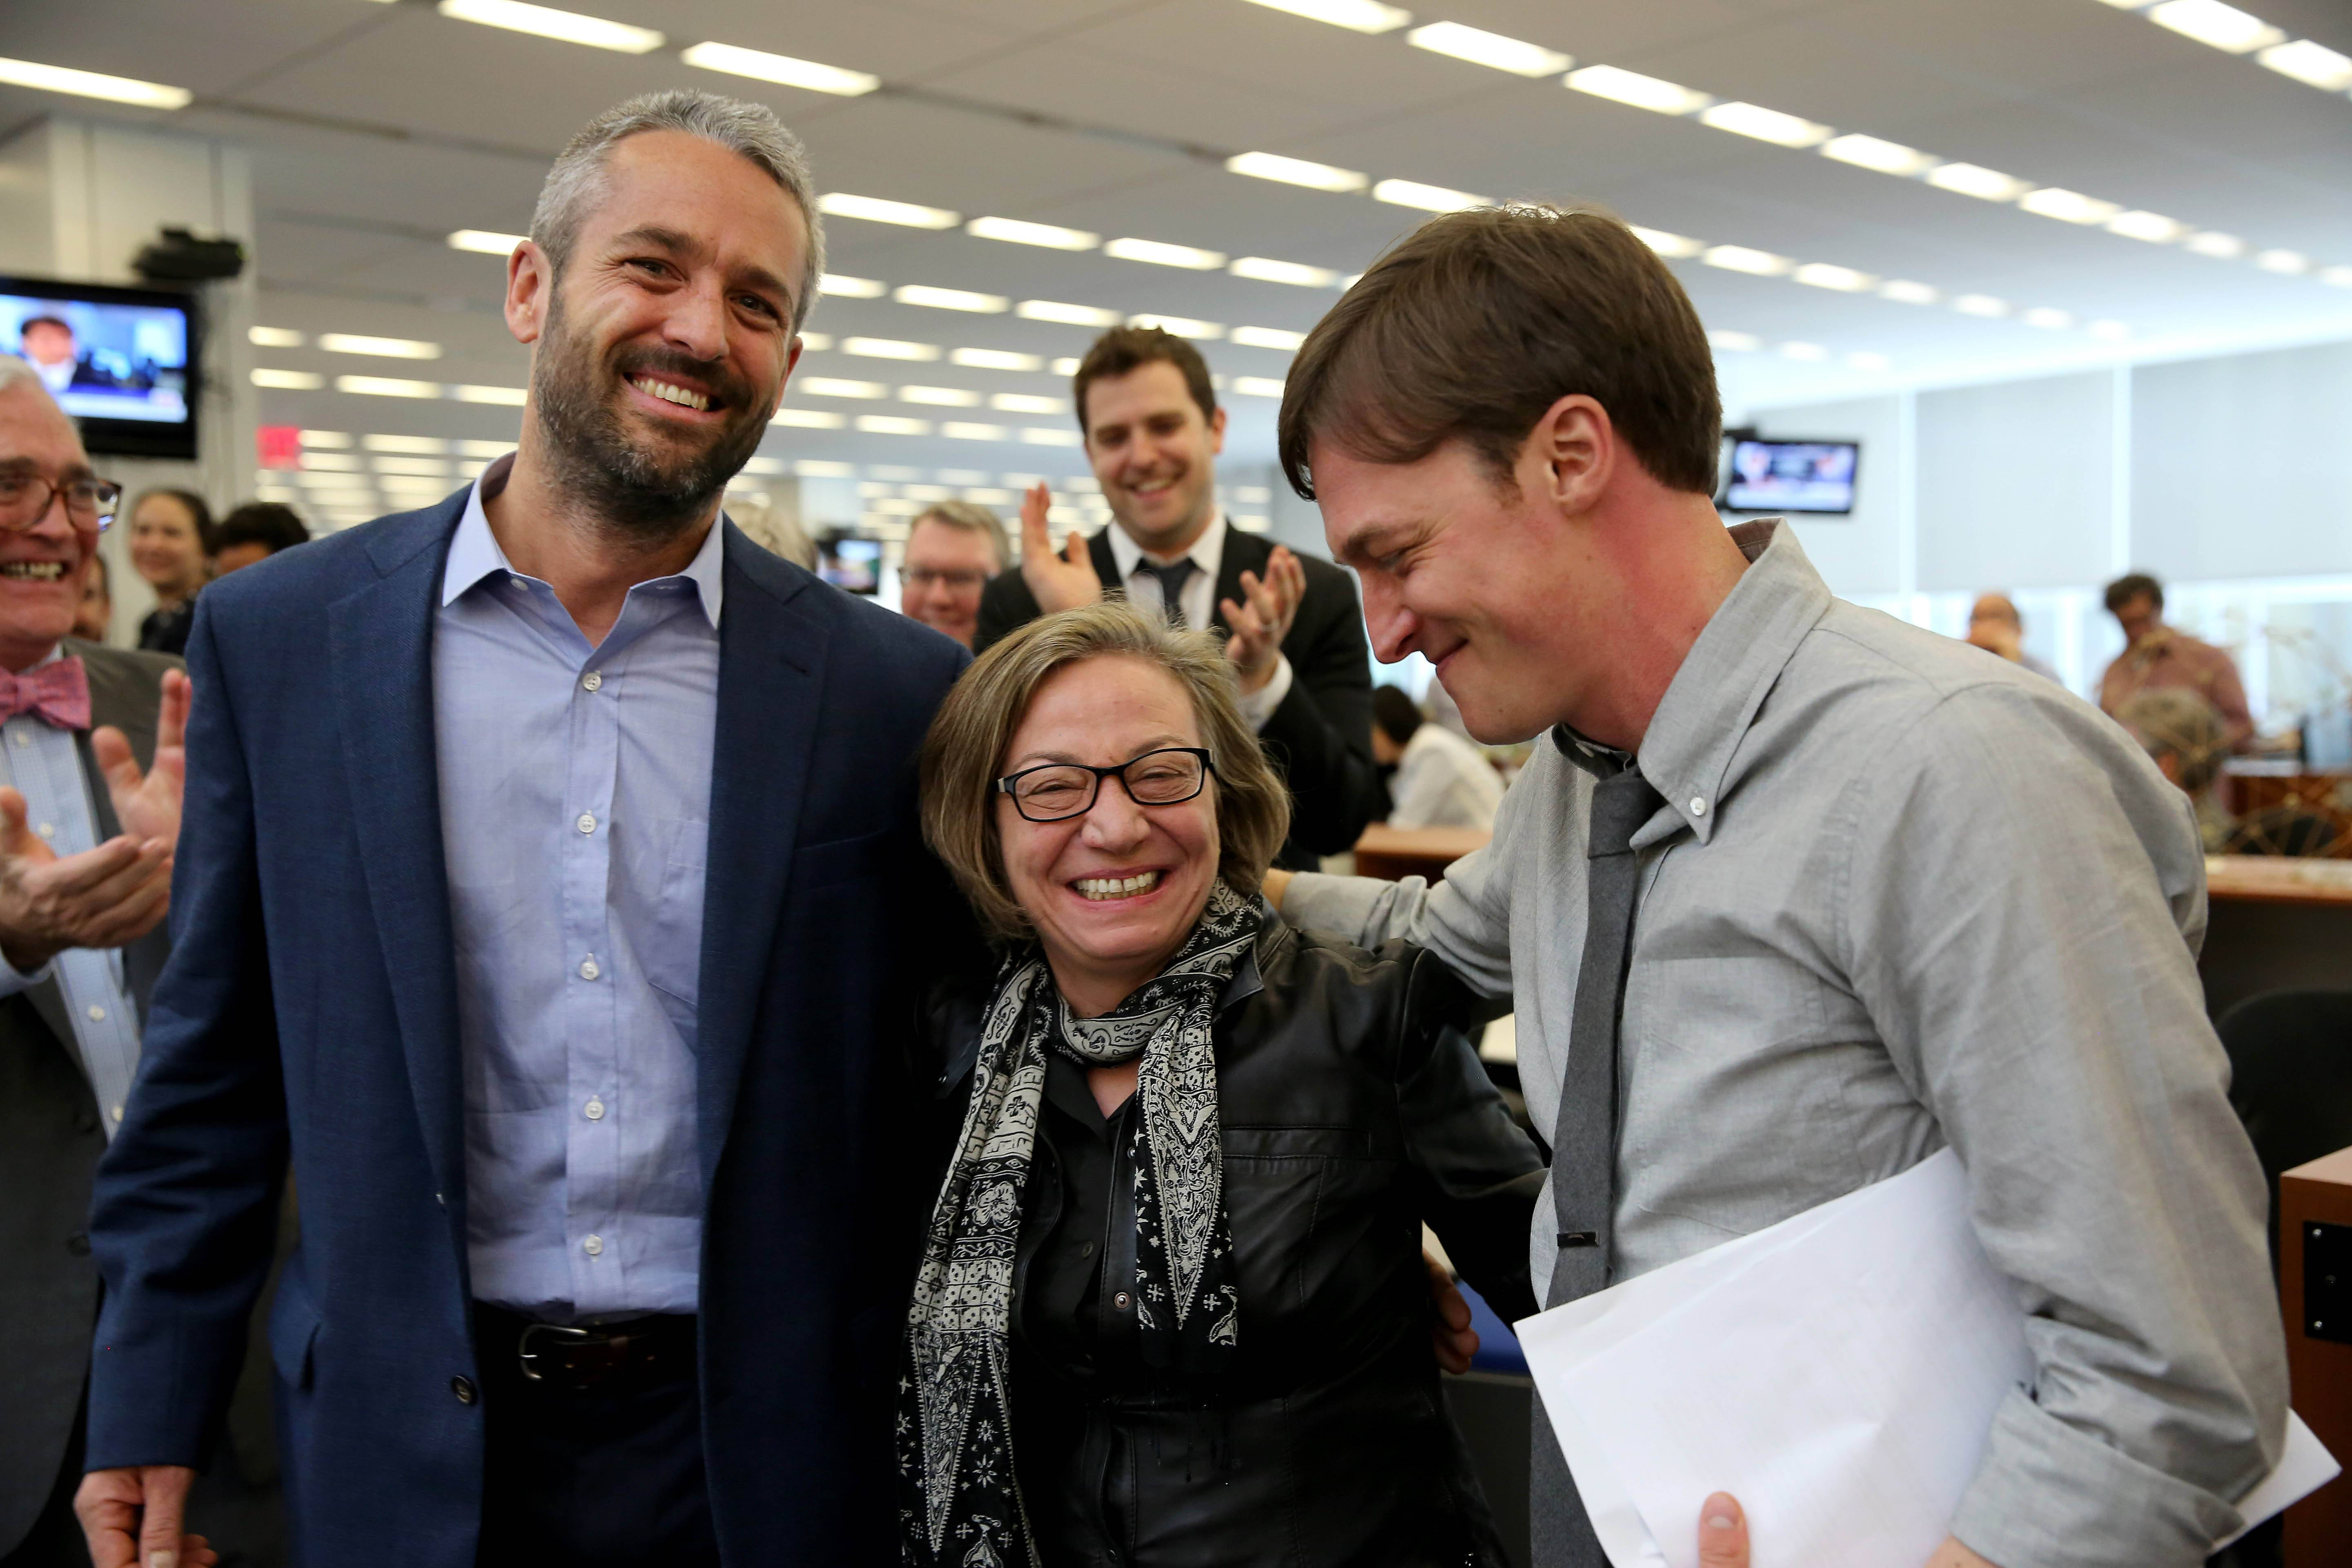 Michele McNally, center, director of photography and assistant managing editor of The New York Times, is flanked by photographers Tyler Hicks, left, and Josh Haner after it was announced in the New York newsroom Monday that Hicks and Haner had won Pulitzer Prizes.